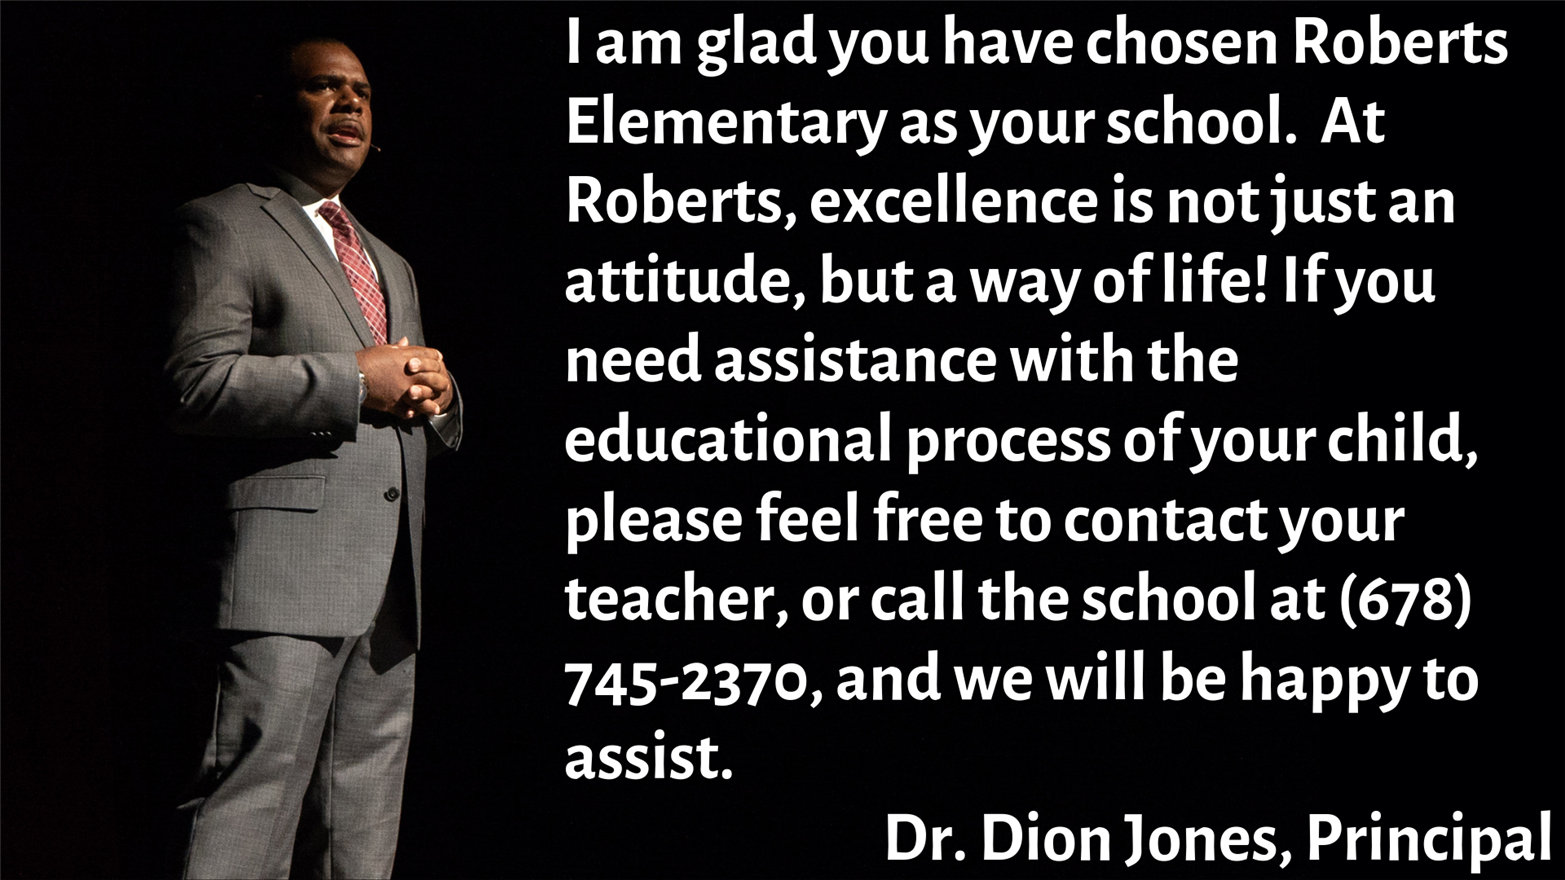 Dr. Jones Portrait with message: I am glad you have chosen Roberts Elementary as your school.  At Roberts, excellence is not